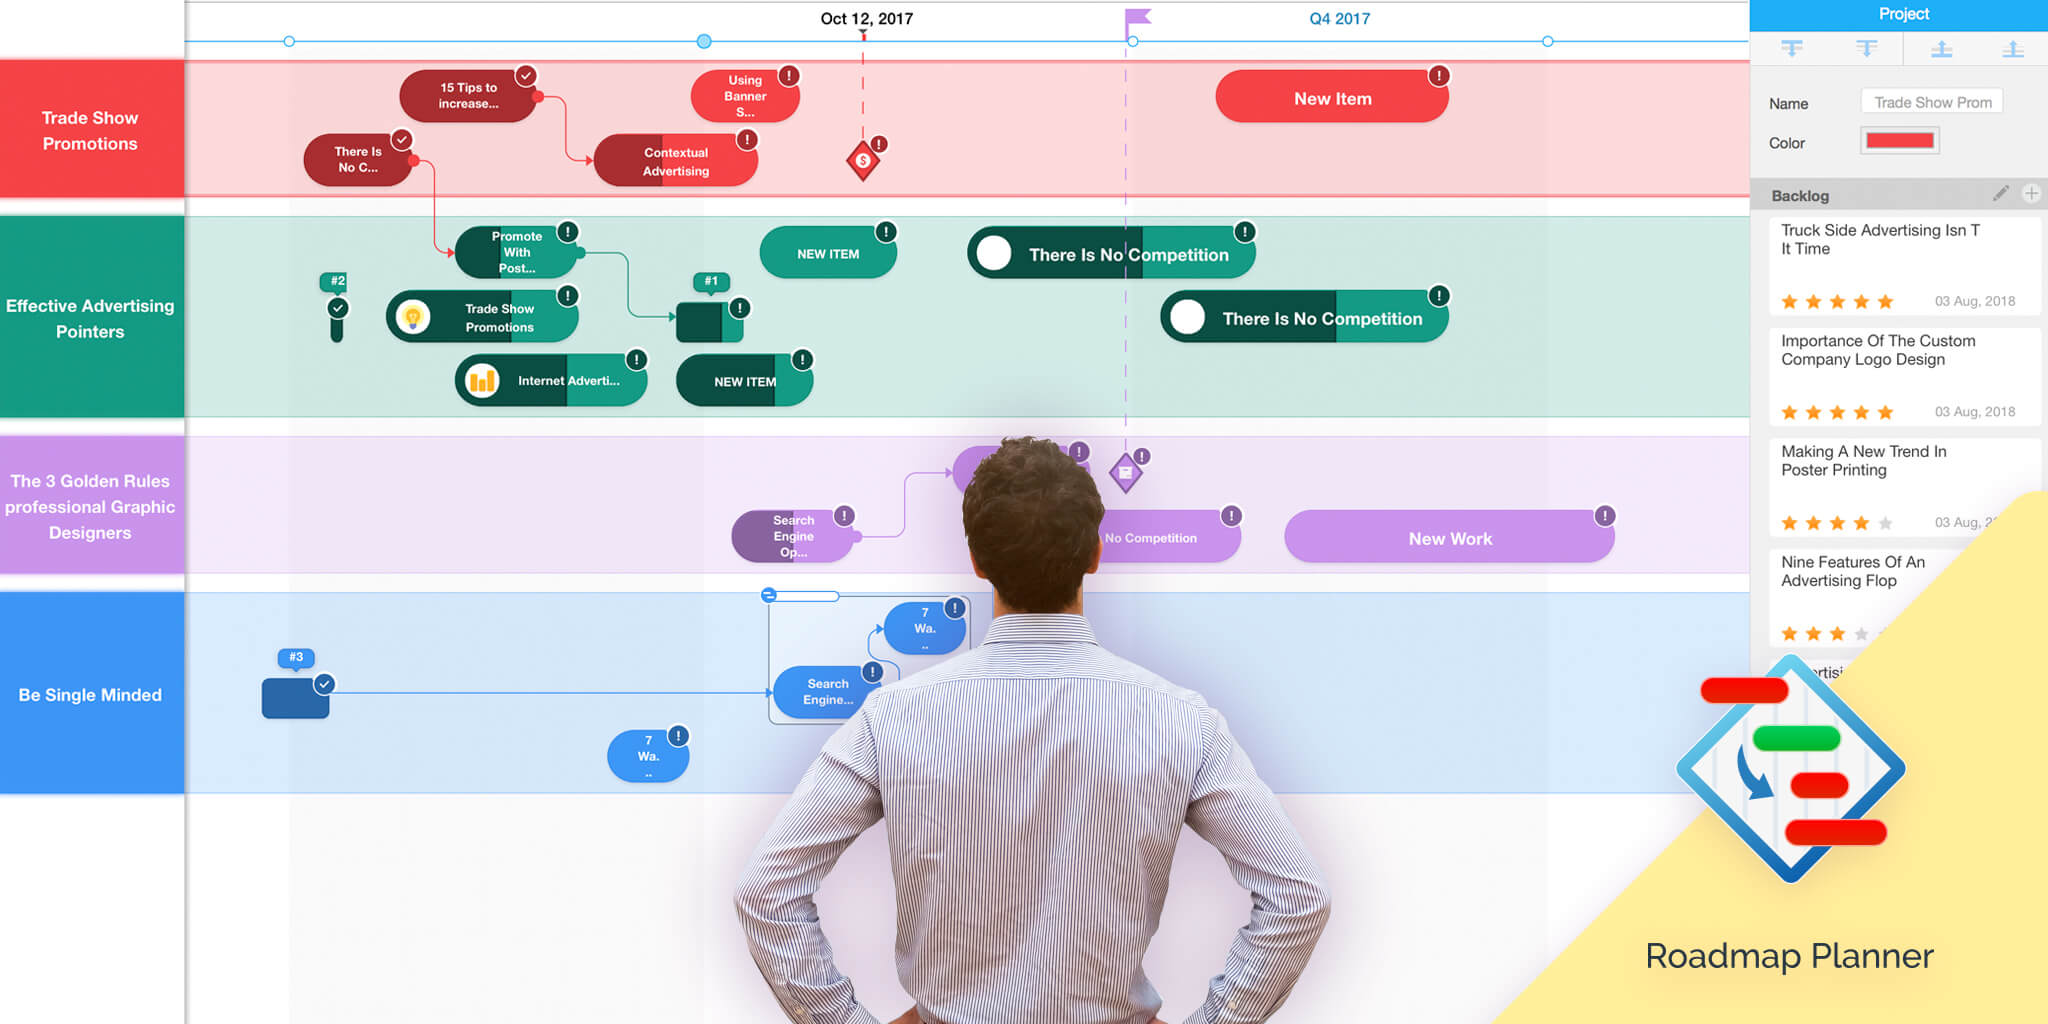 The manager is looking at Gannt chart scheadule in Roadmap Planner and planning a new strategy.